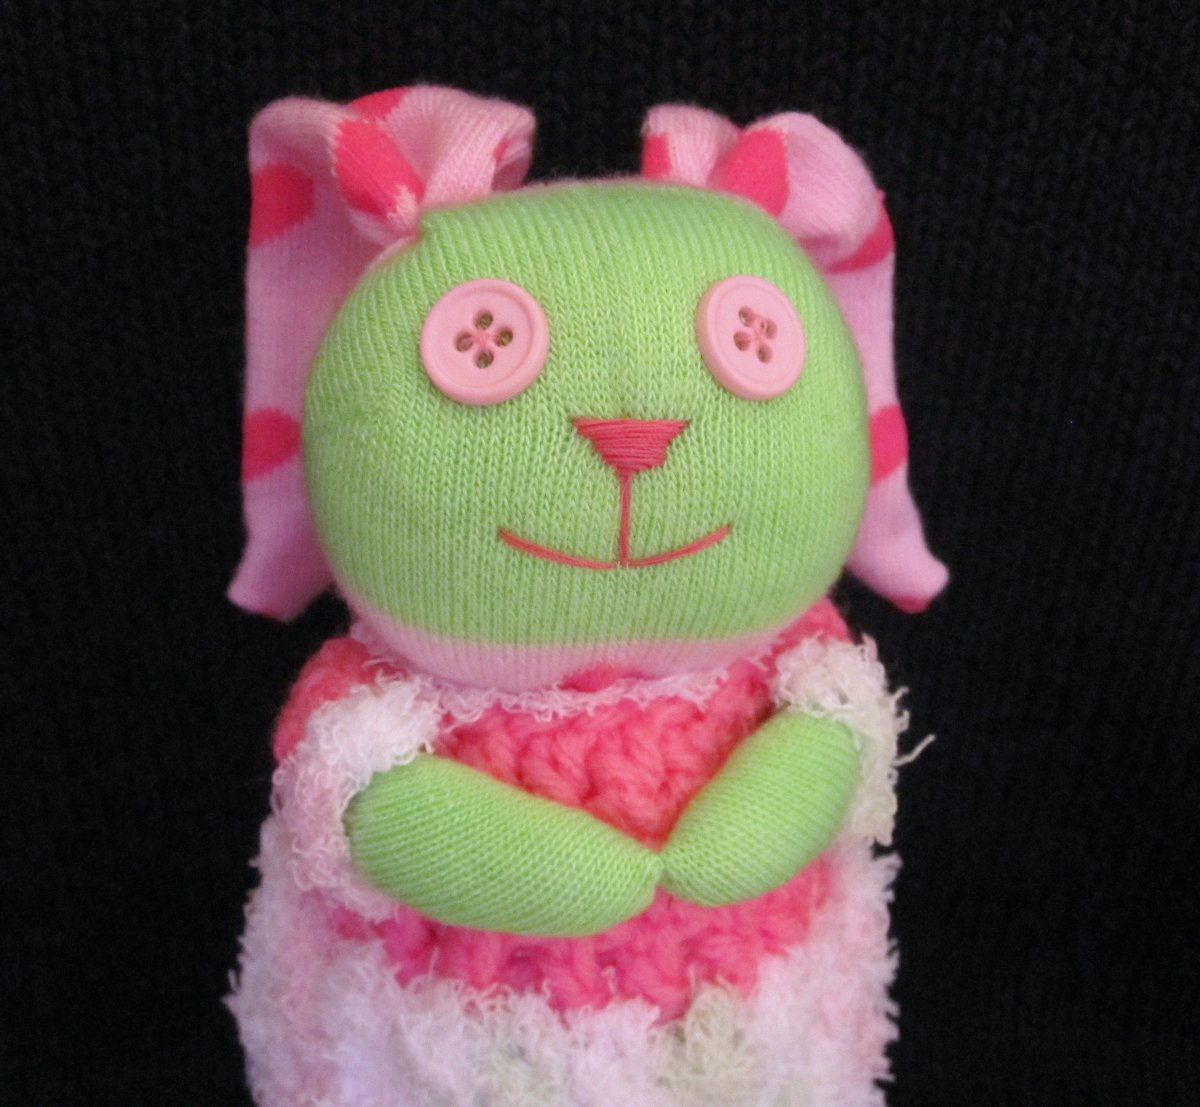 Scrap Bunnies, How to Make Adorable Stuffed Bunnies Out of Socks and Craft Scraps.